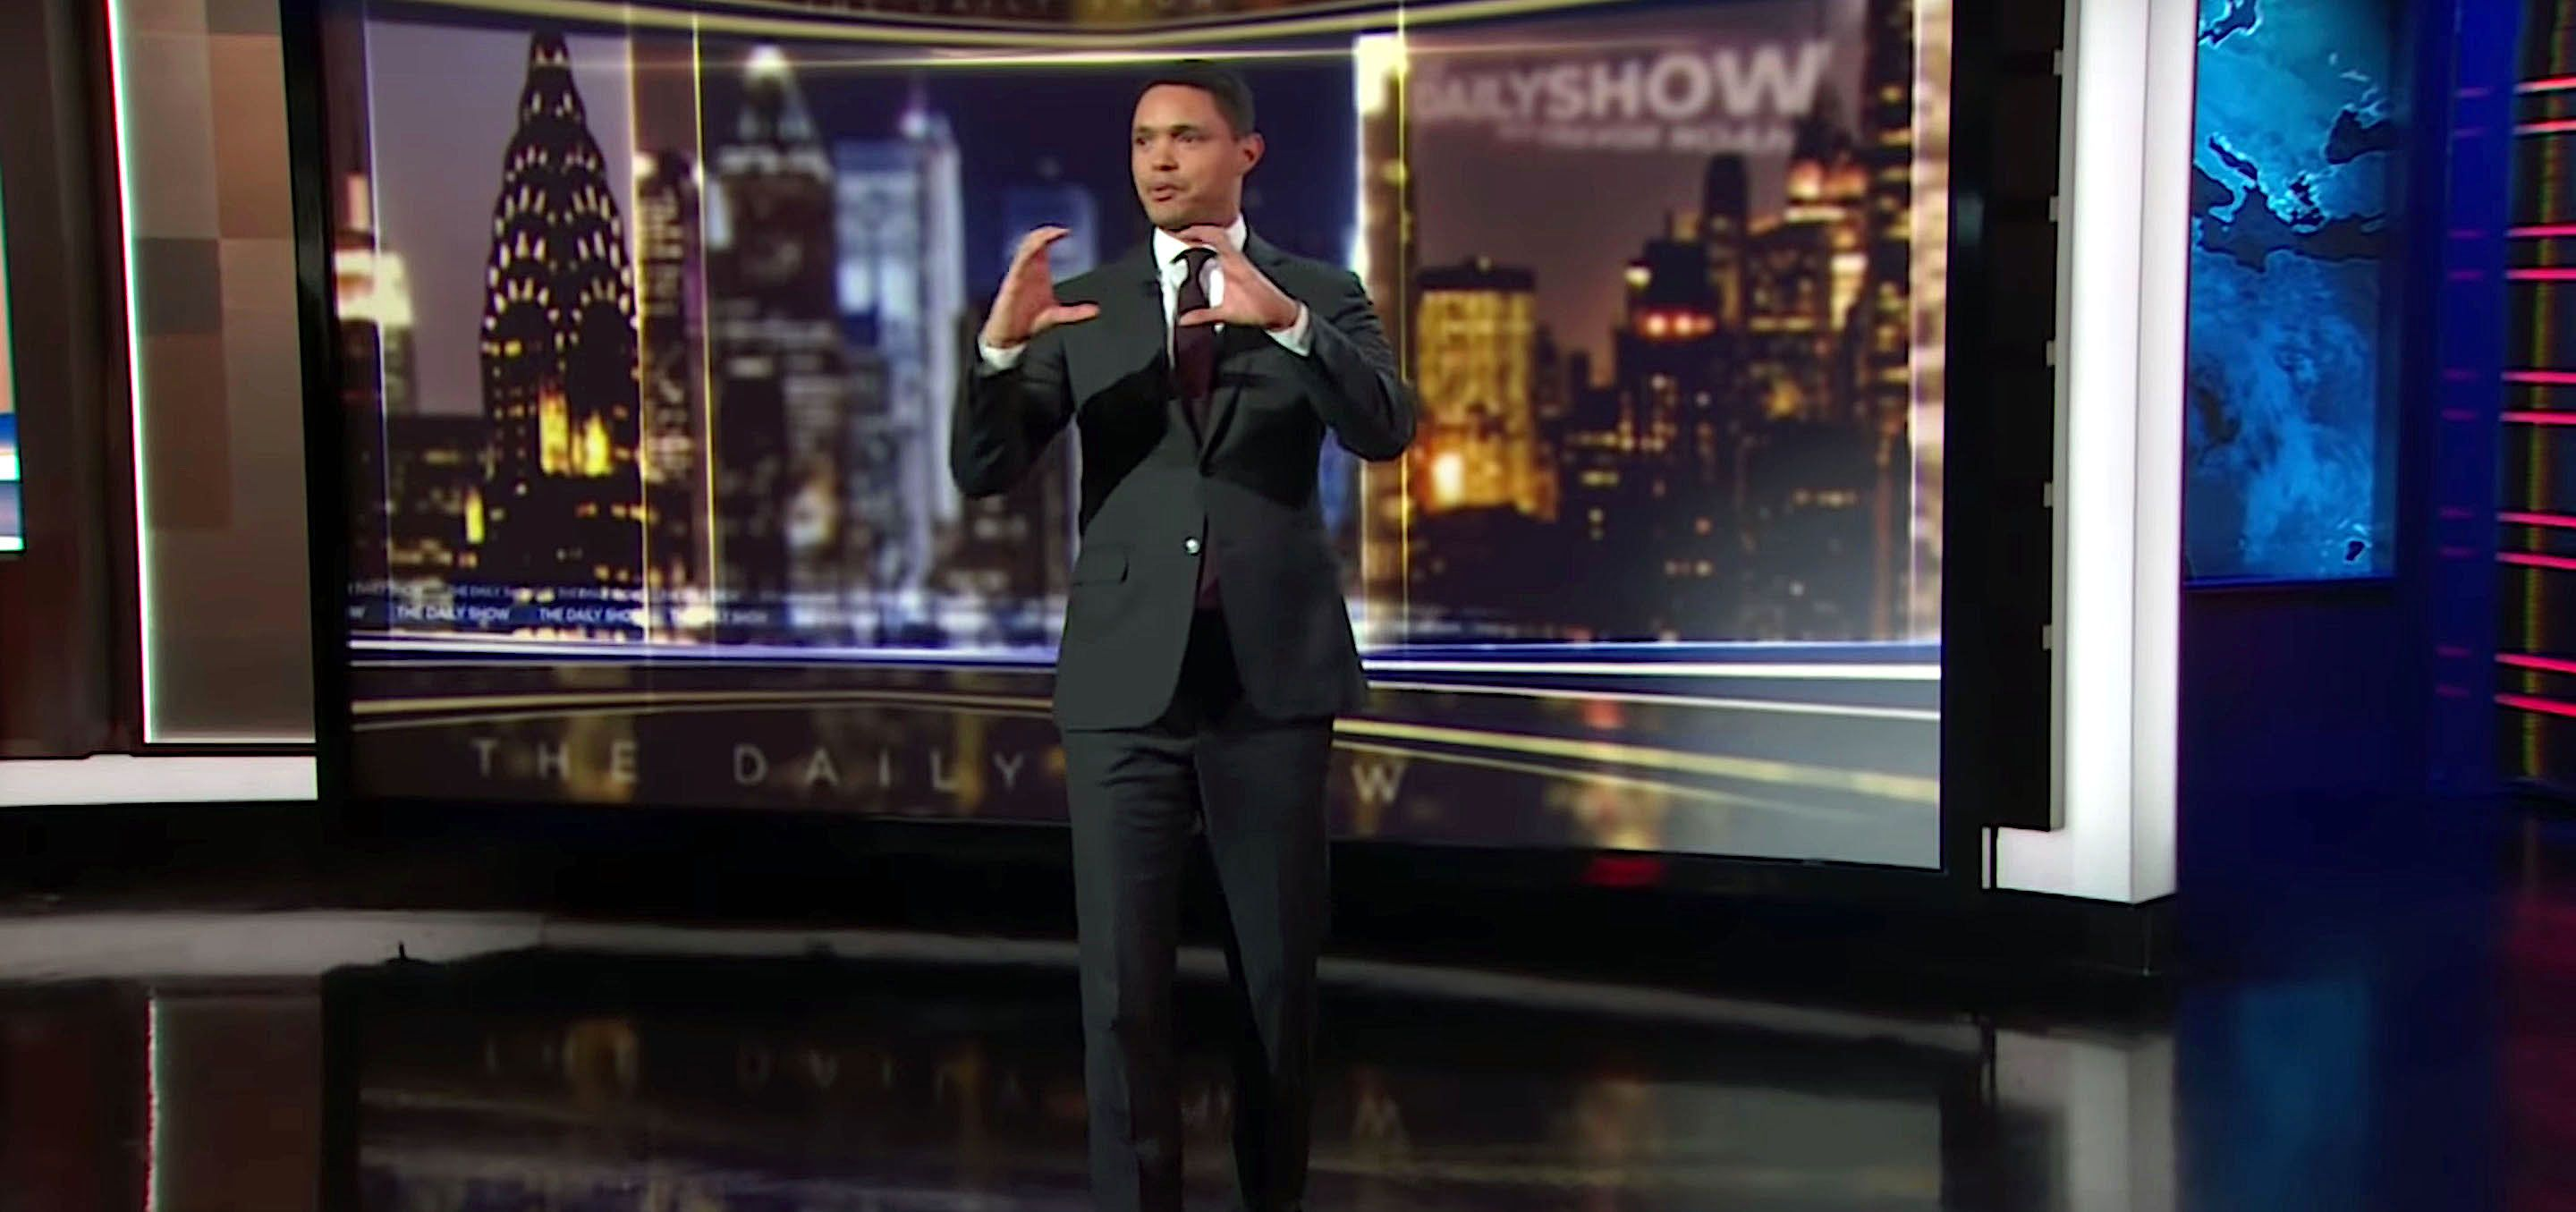 Trevor Noah's Favorite Childhood Toy: A Brick (Yes, A